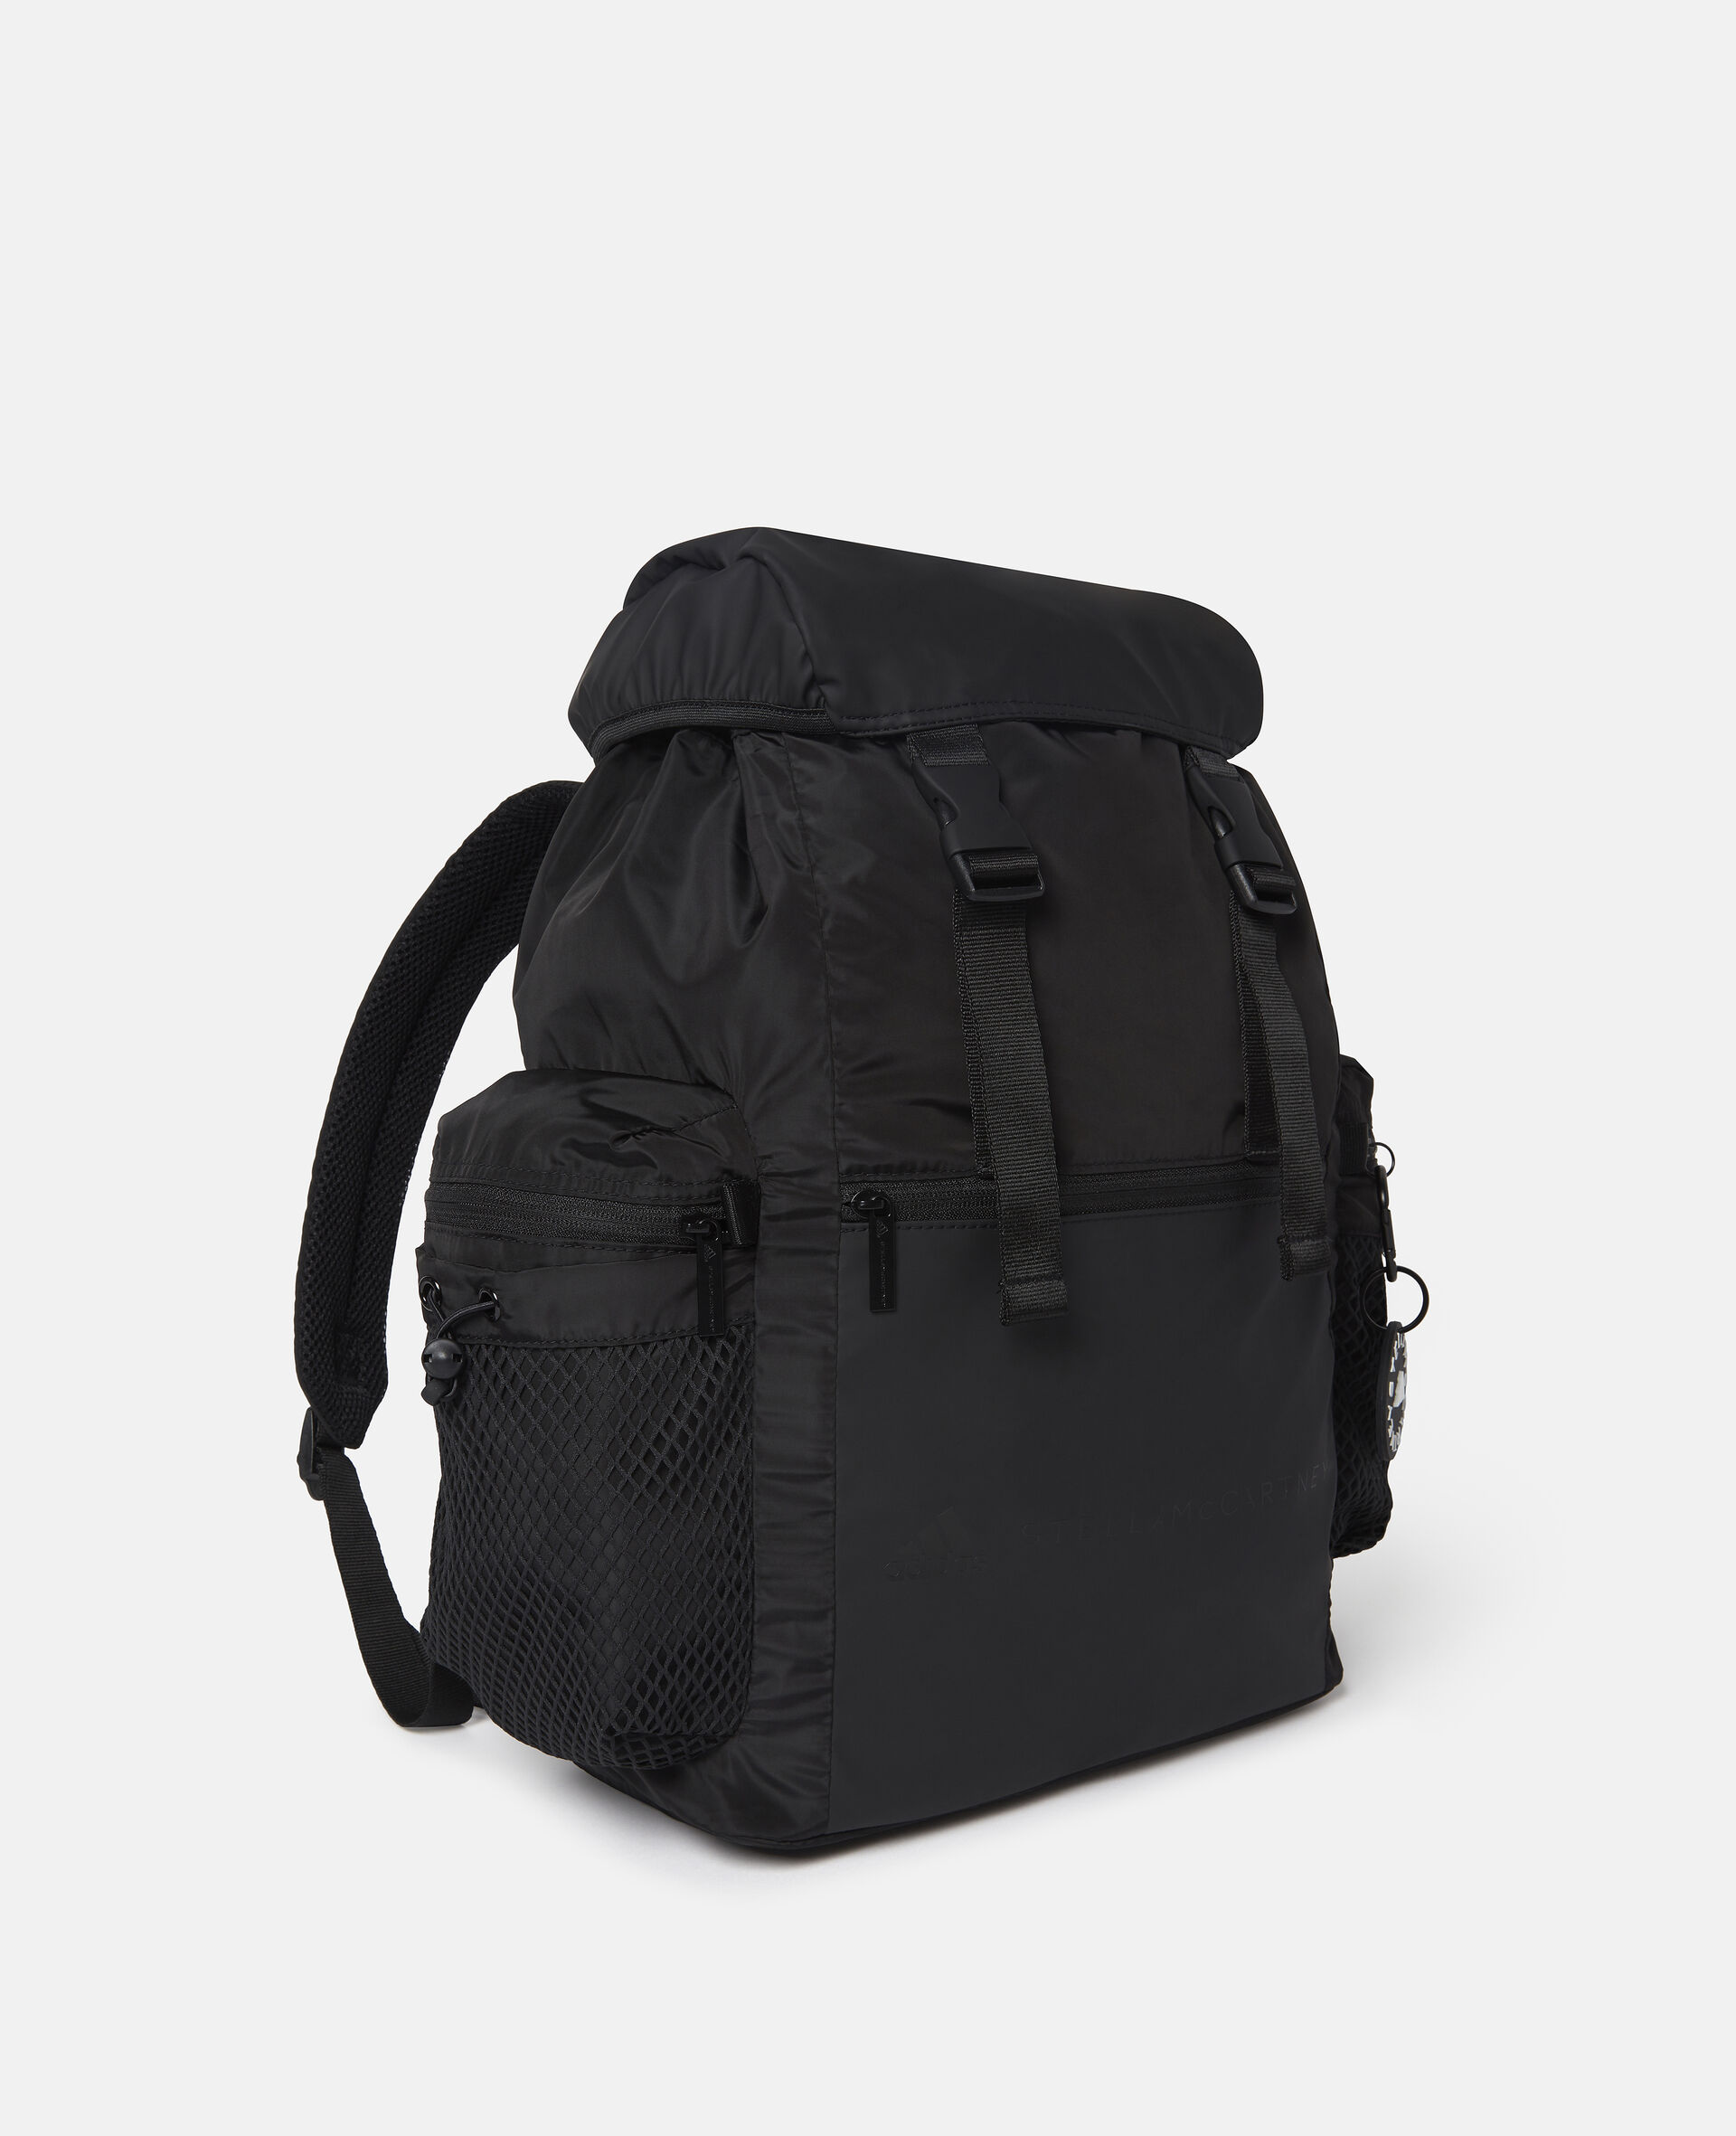 Backpack-Multicolour-large image number 1